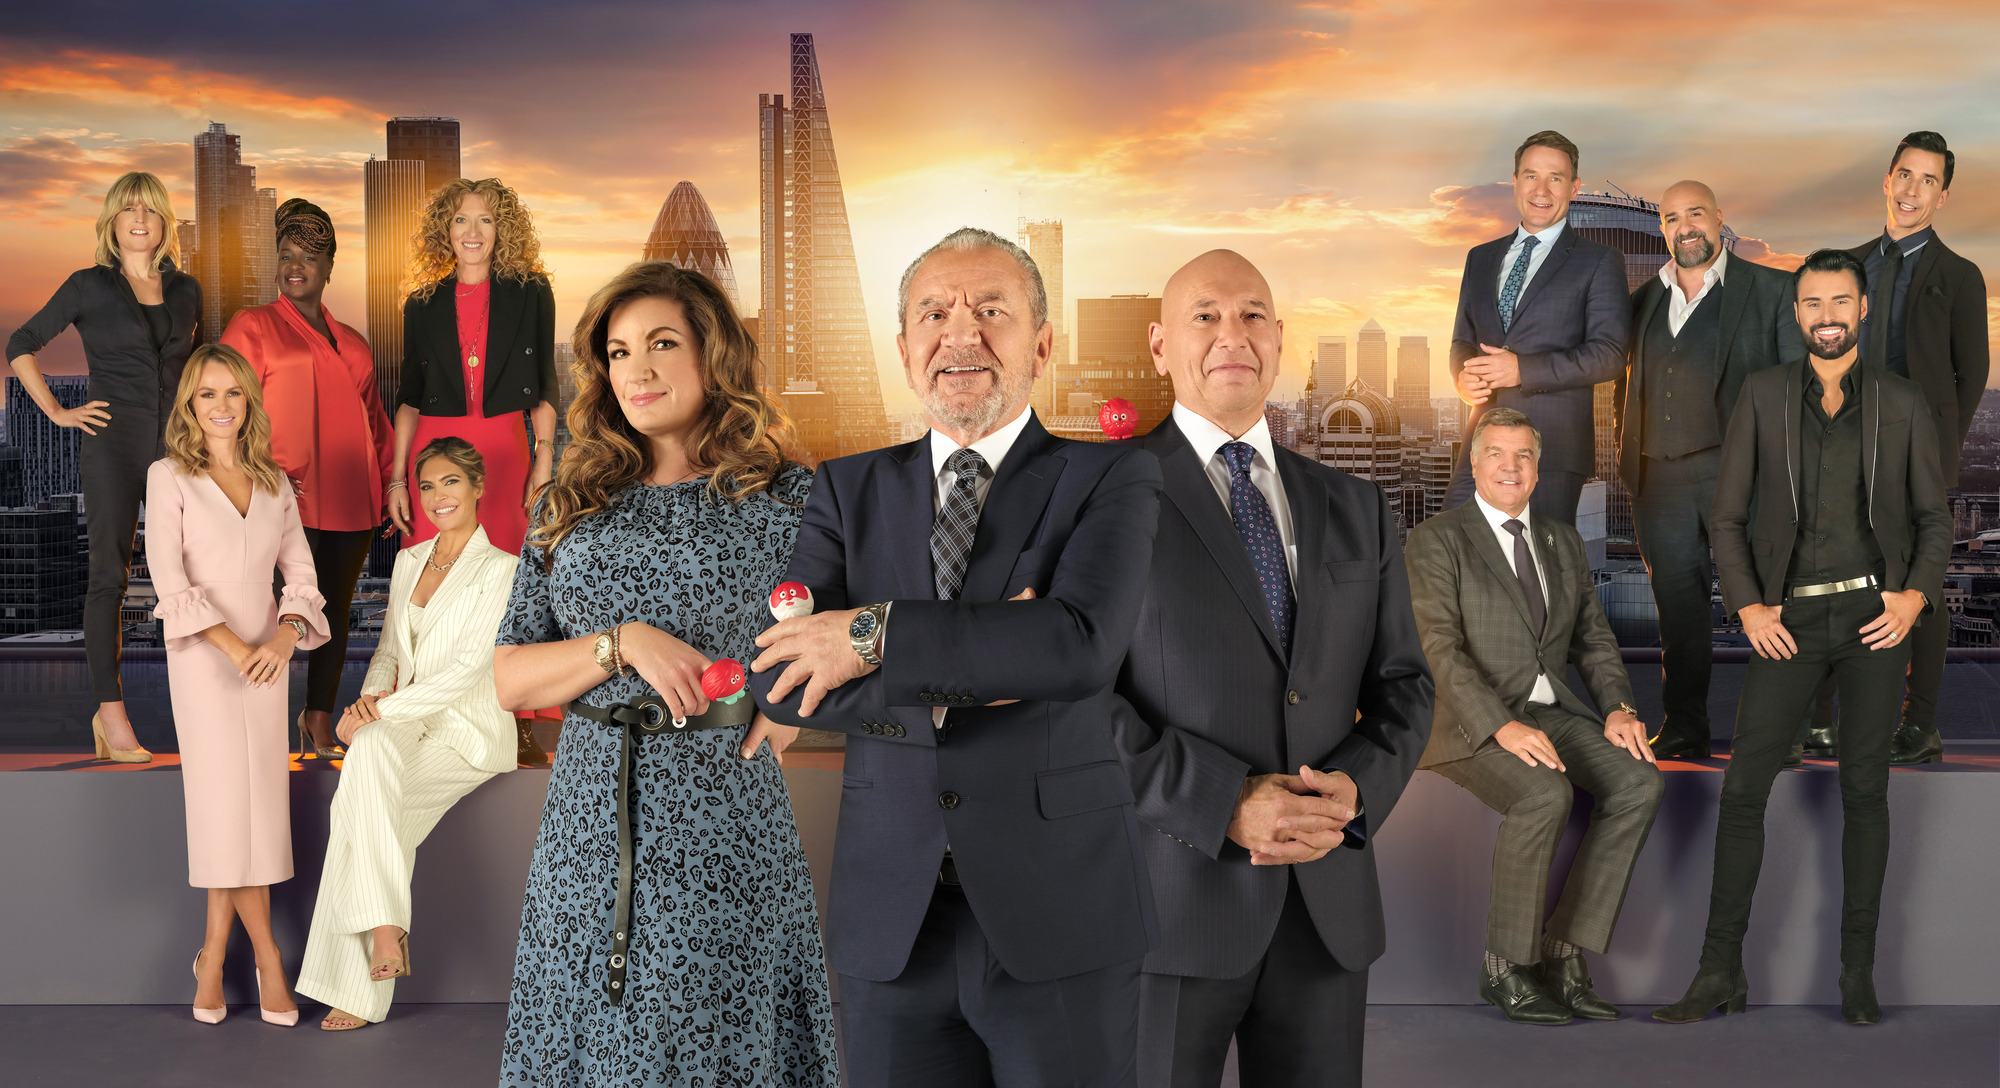 Lord Sugar and the Celebrity Apprentice For Comic Relief candidates